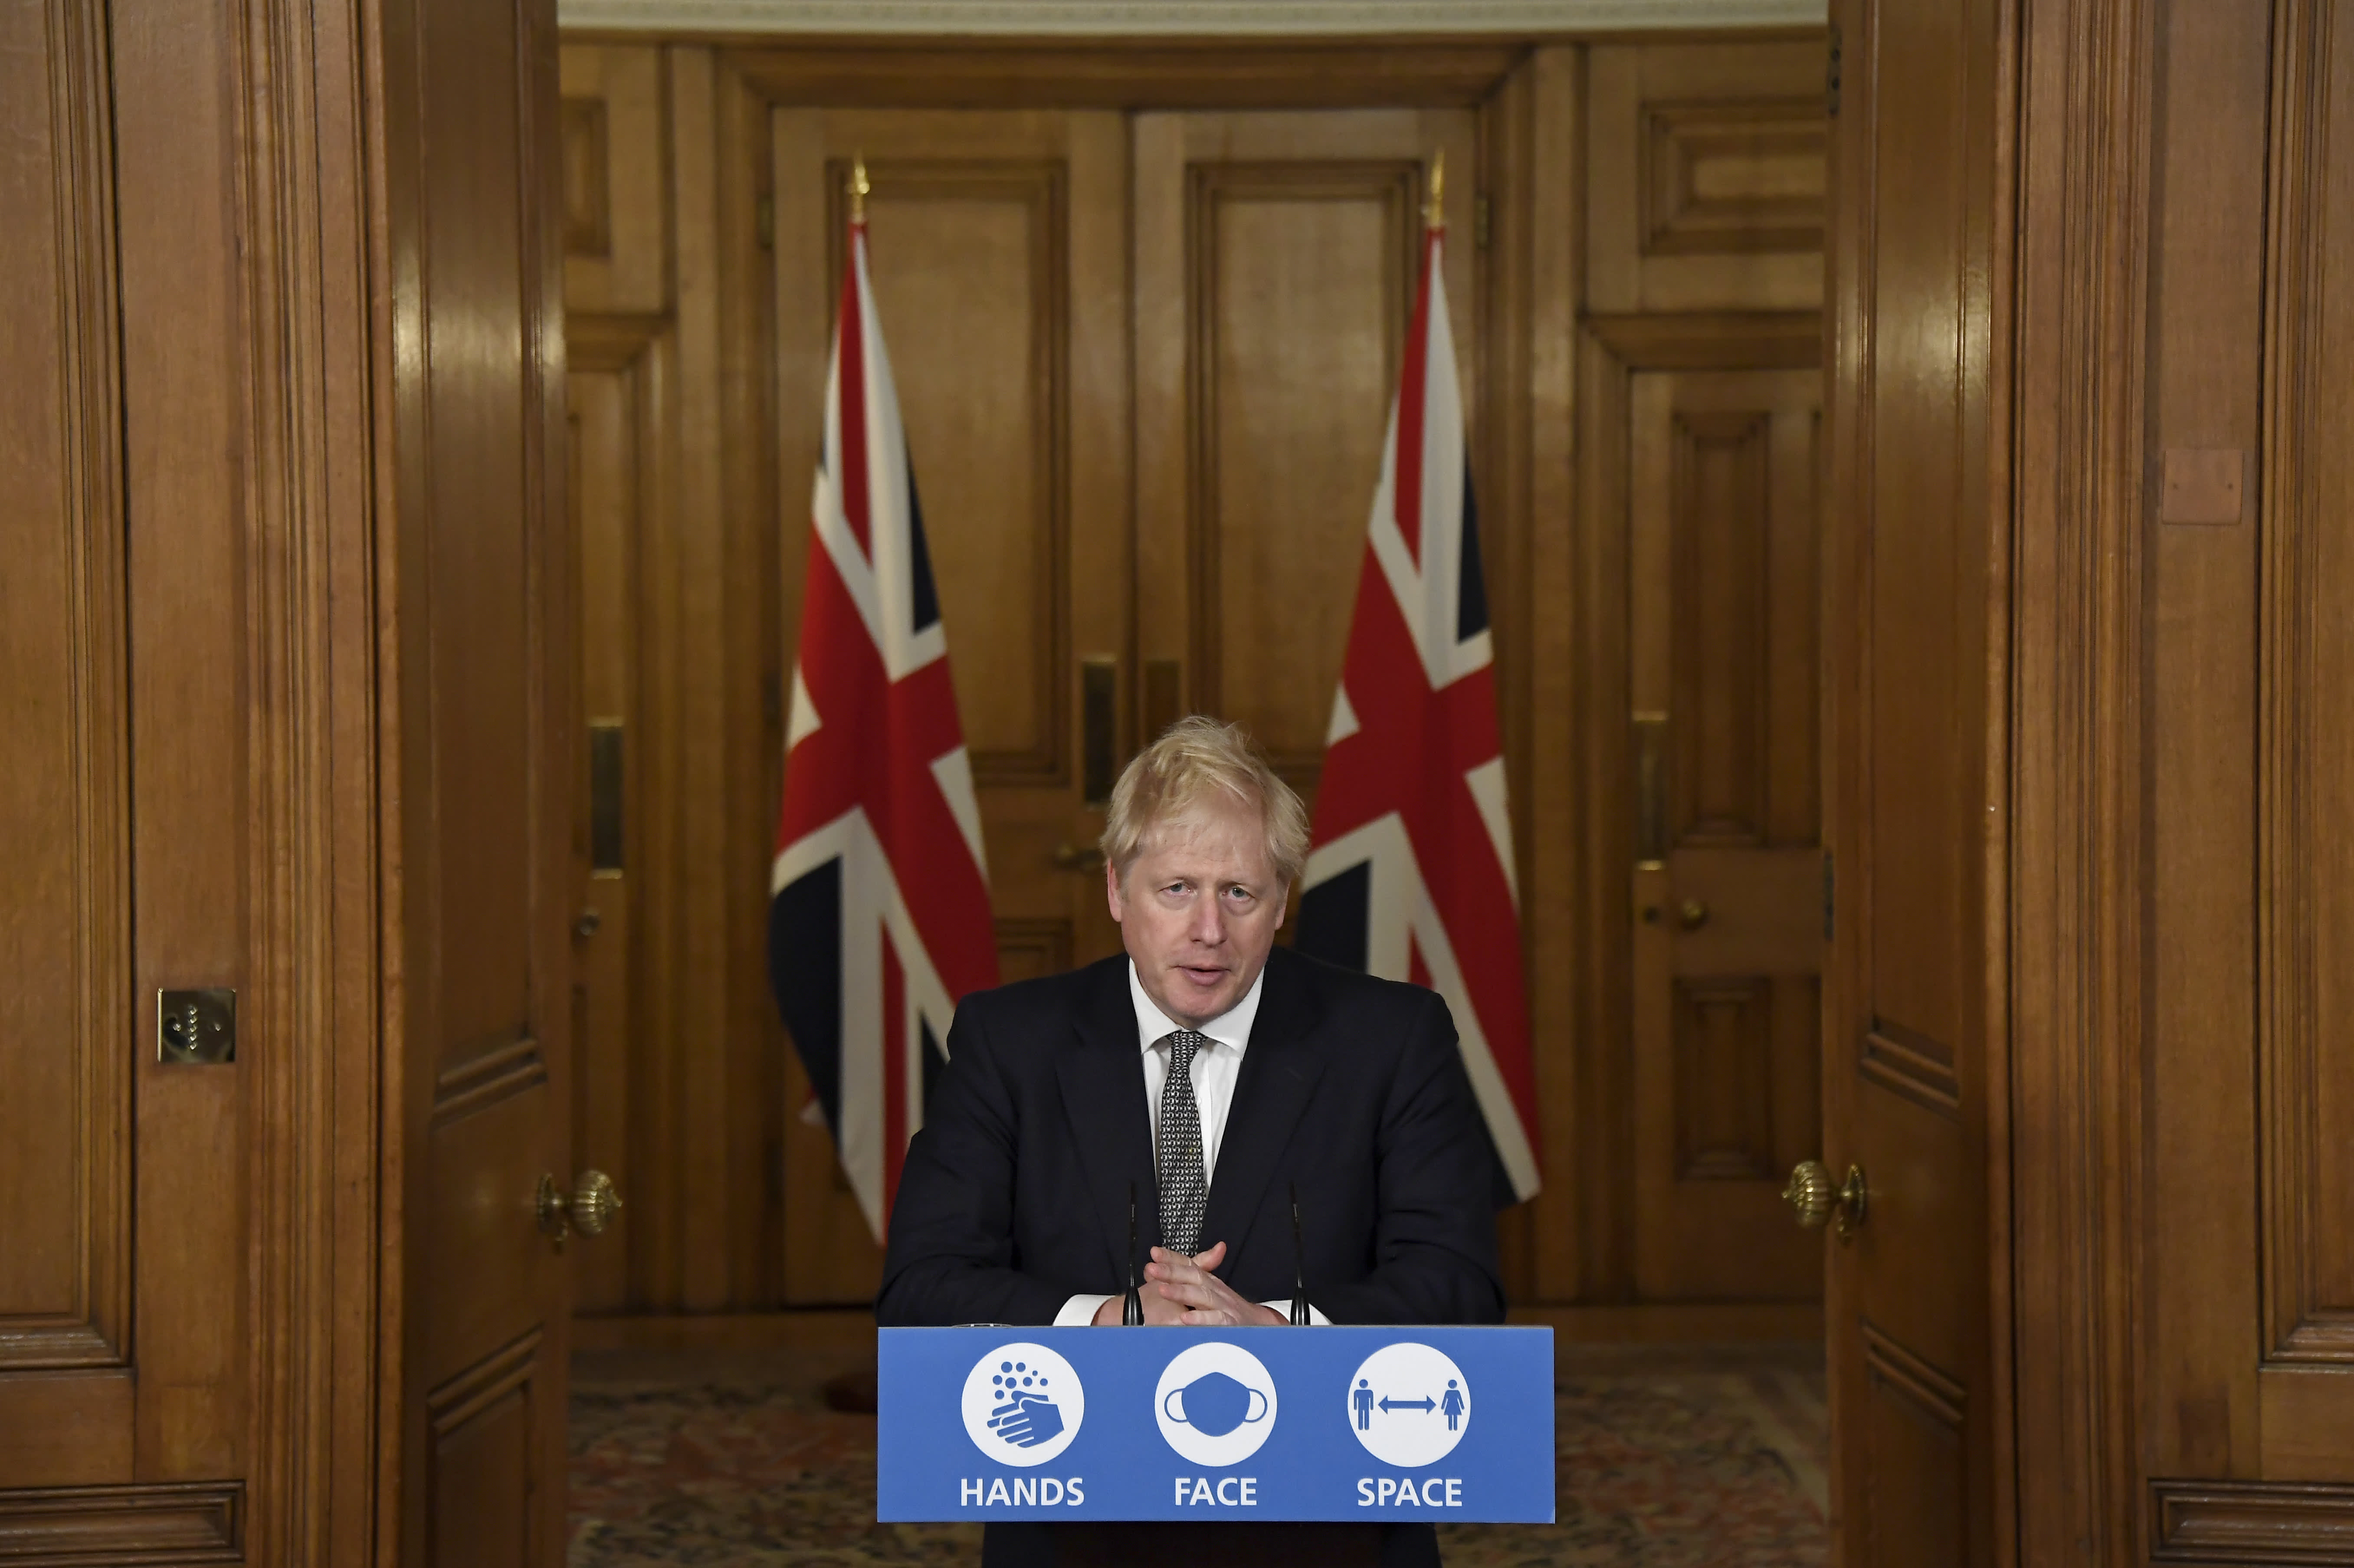 Prime Minister Boris Johnson imposes stay-at-home order in England as coronavirus cases surge